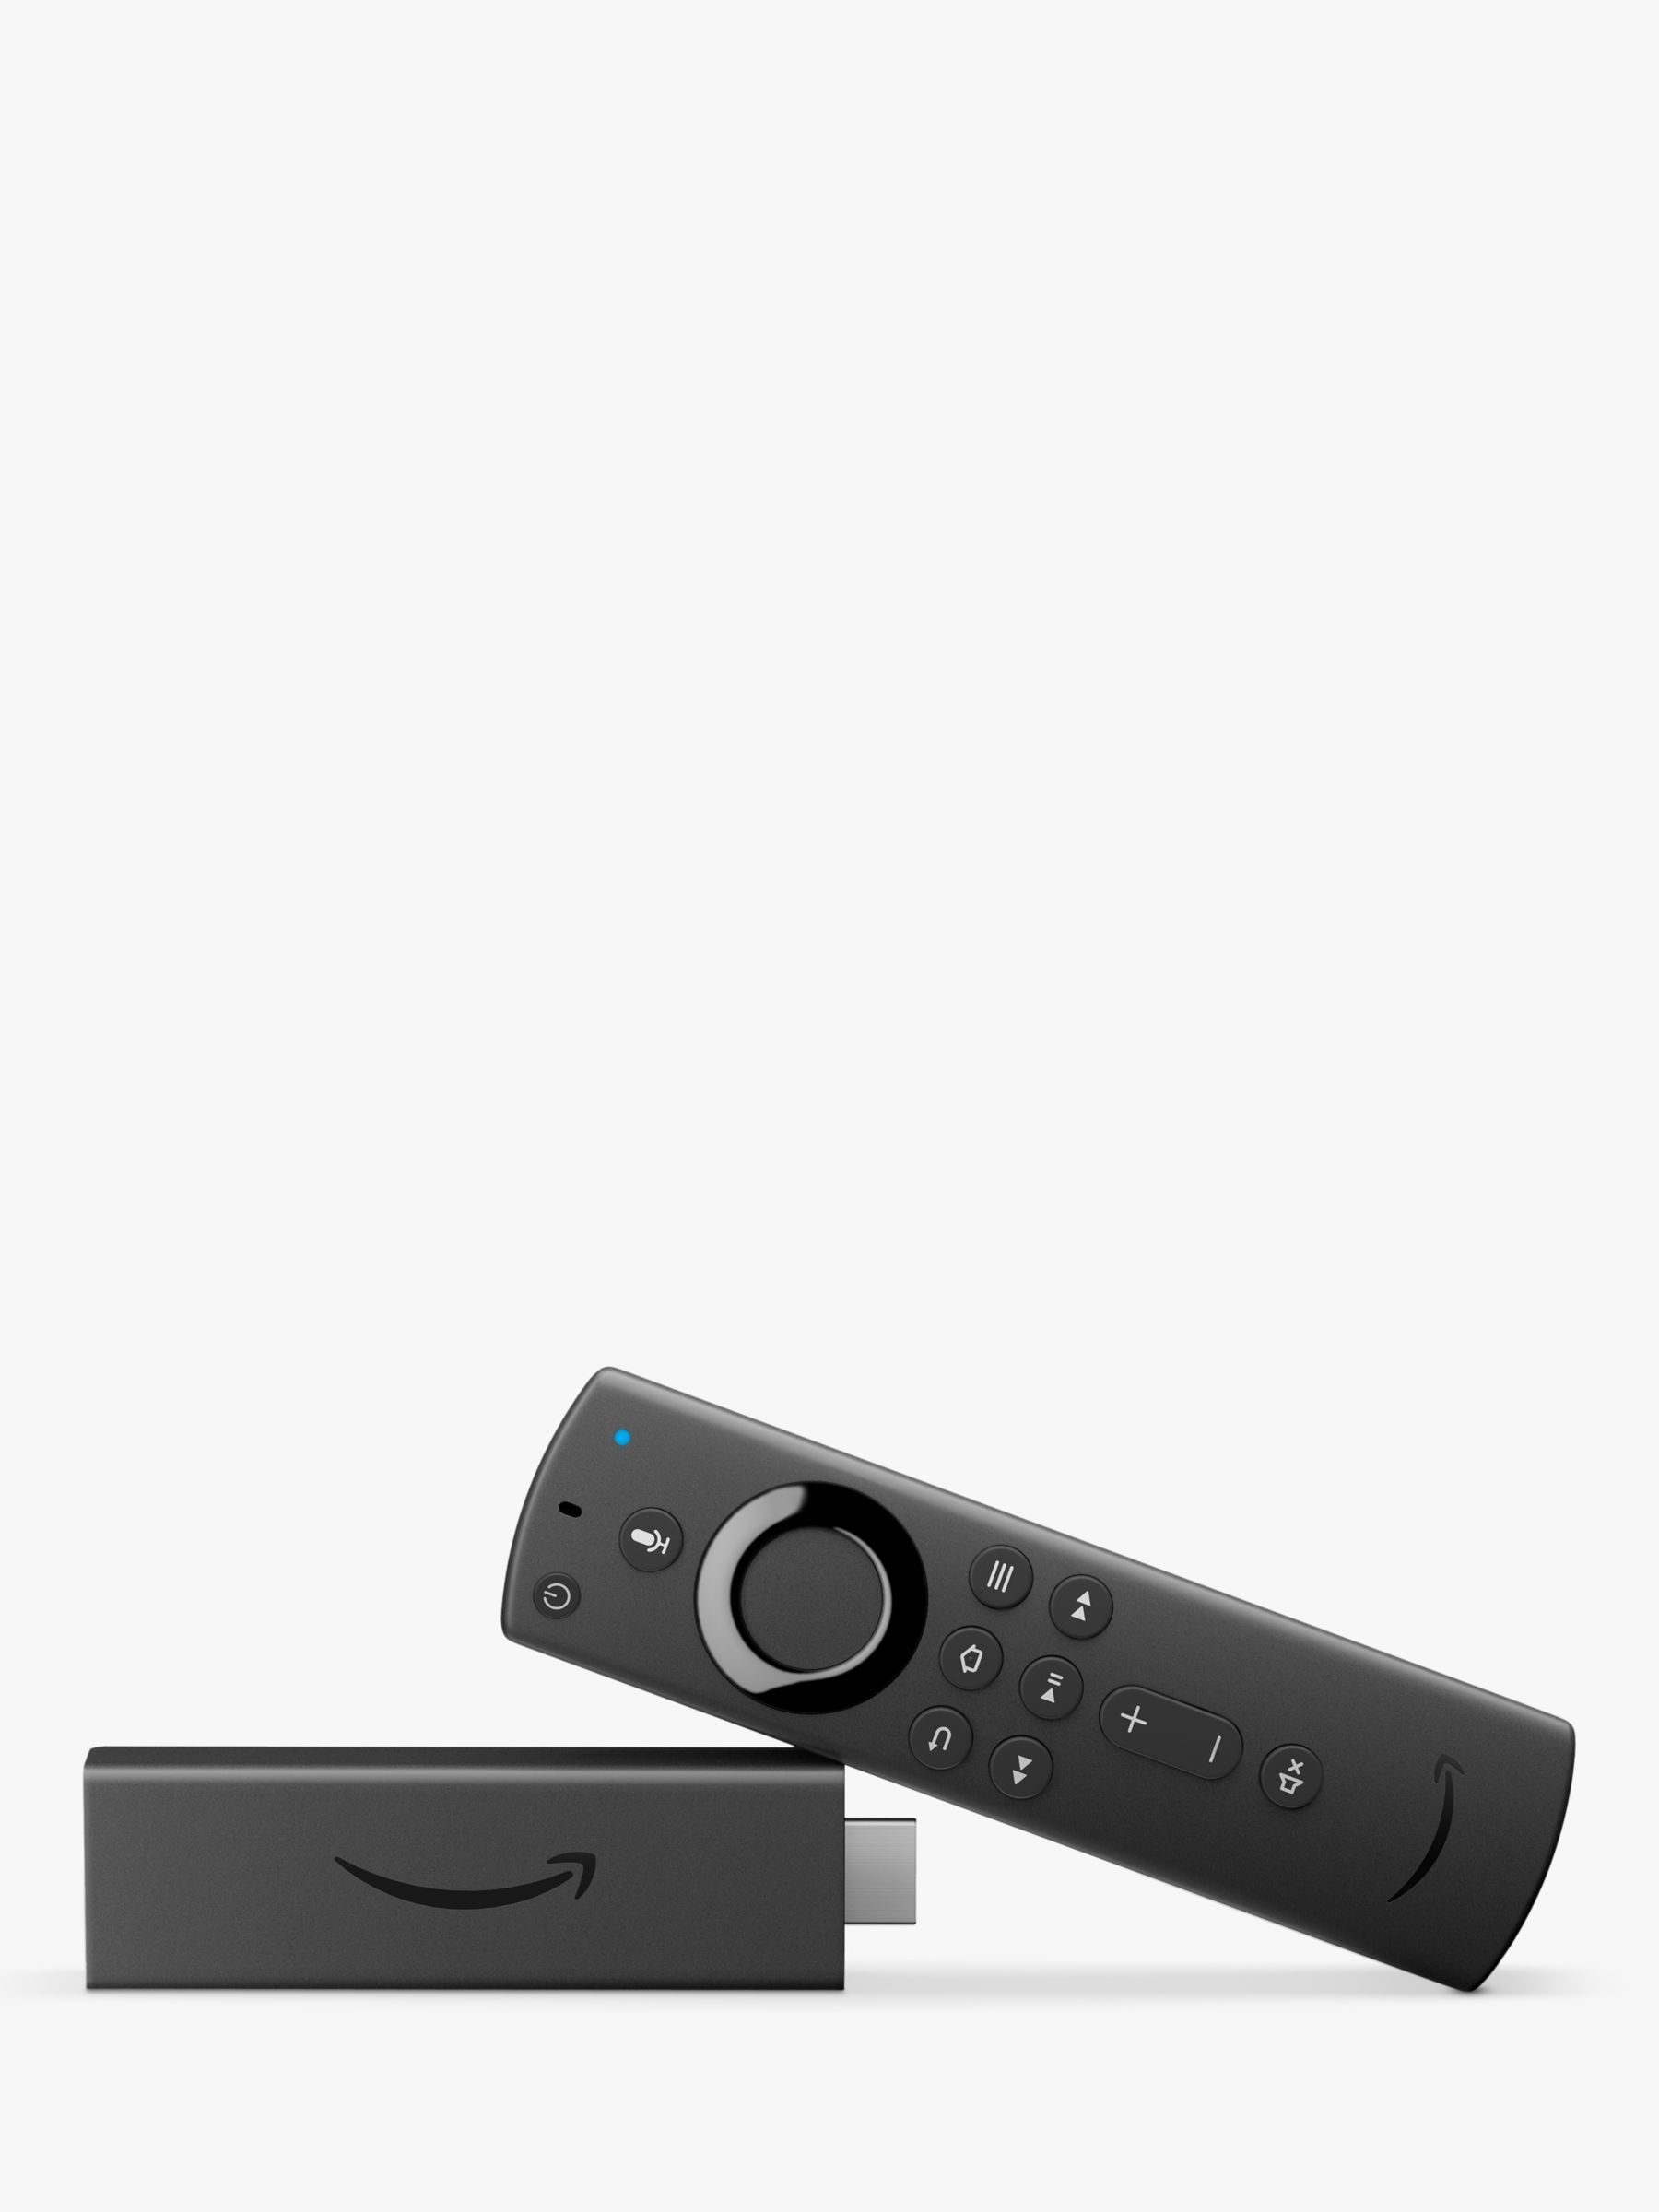 The Most Powerful Streaming Media Stick With A New Wi Fi Antenna Design Optimized For 4k Ultra Hd Streaming Launch And Cont In 2020 Fire Tv Stick Fire Tv Voice Remote